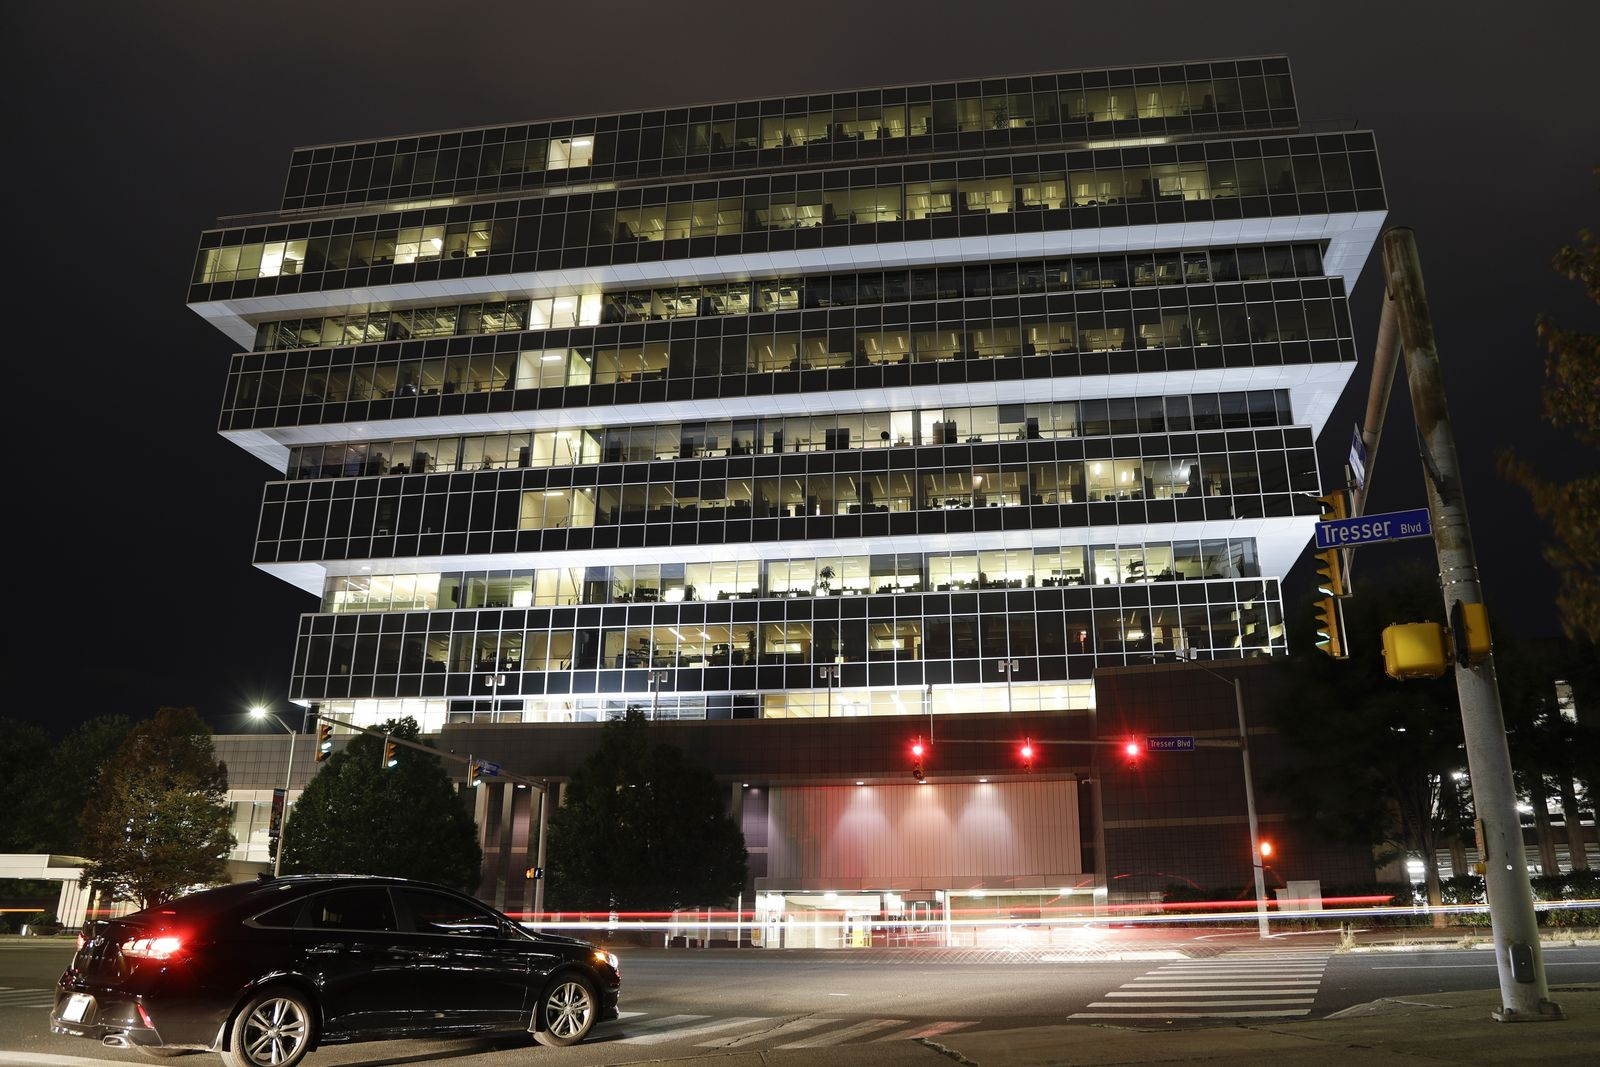 Cars pass Purdue Pharma headquarters Thursday, Sept. 12, 2019, in Stamford, Conn. (AP Photo/Frank Franklin II)